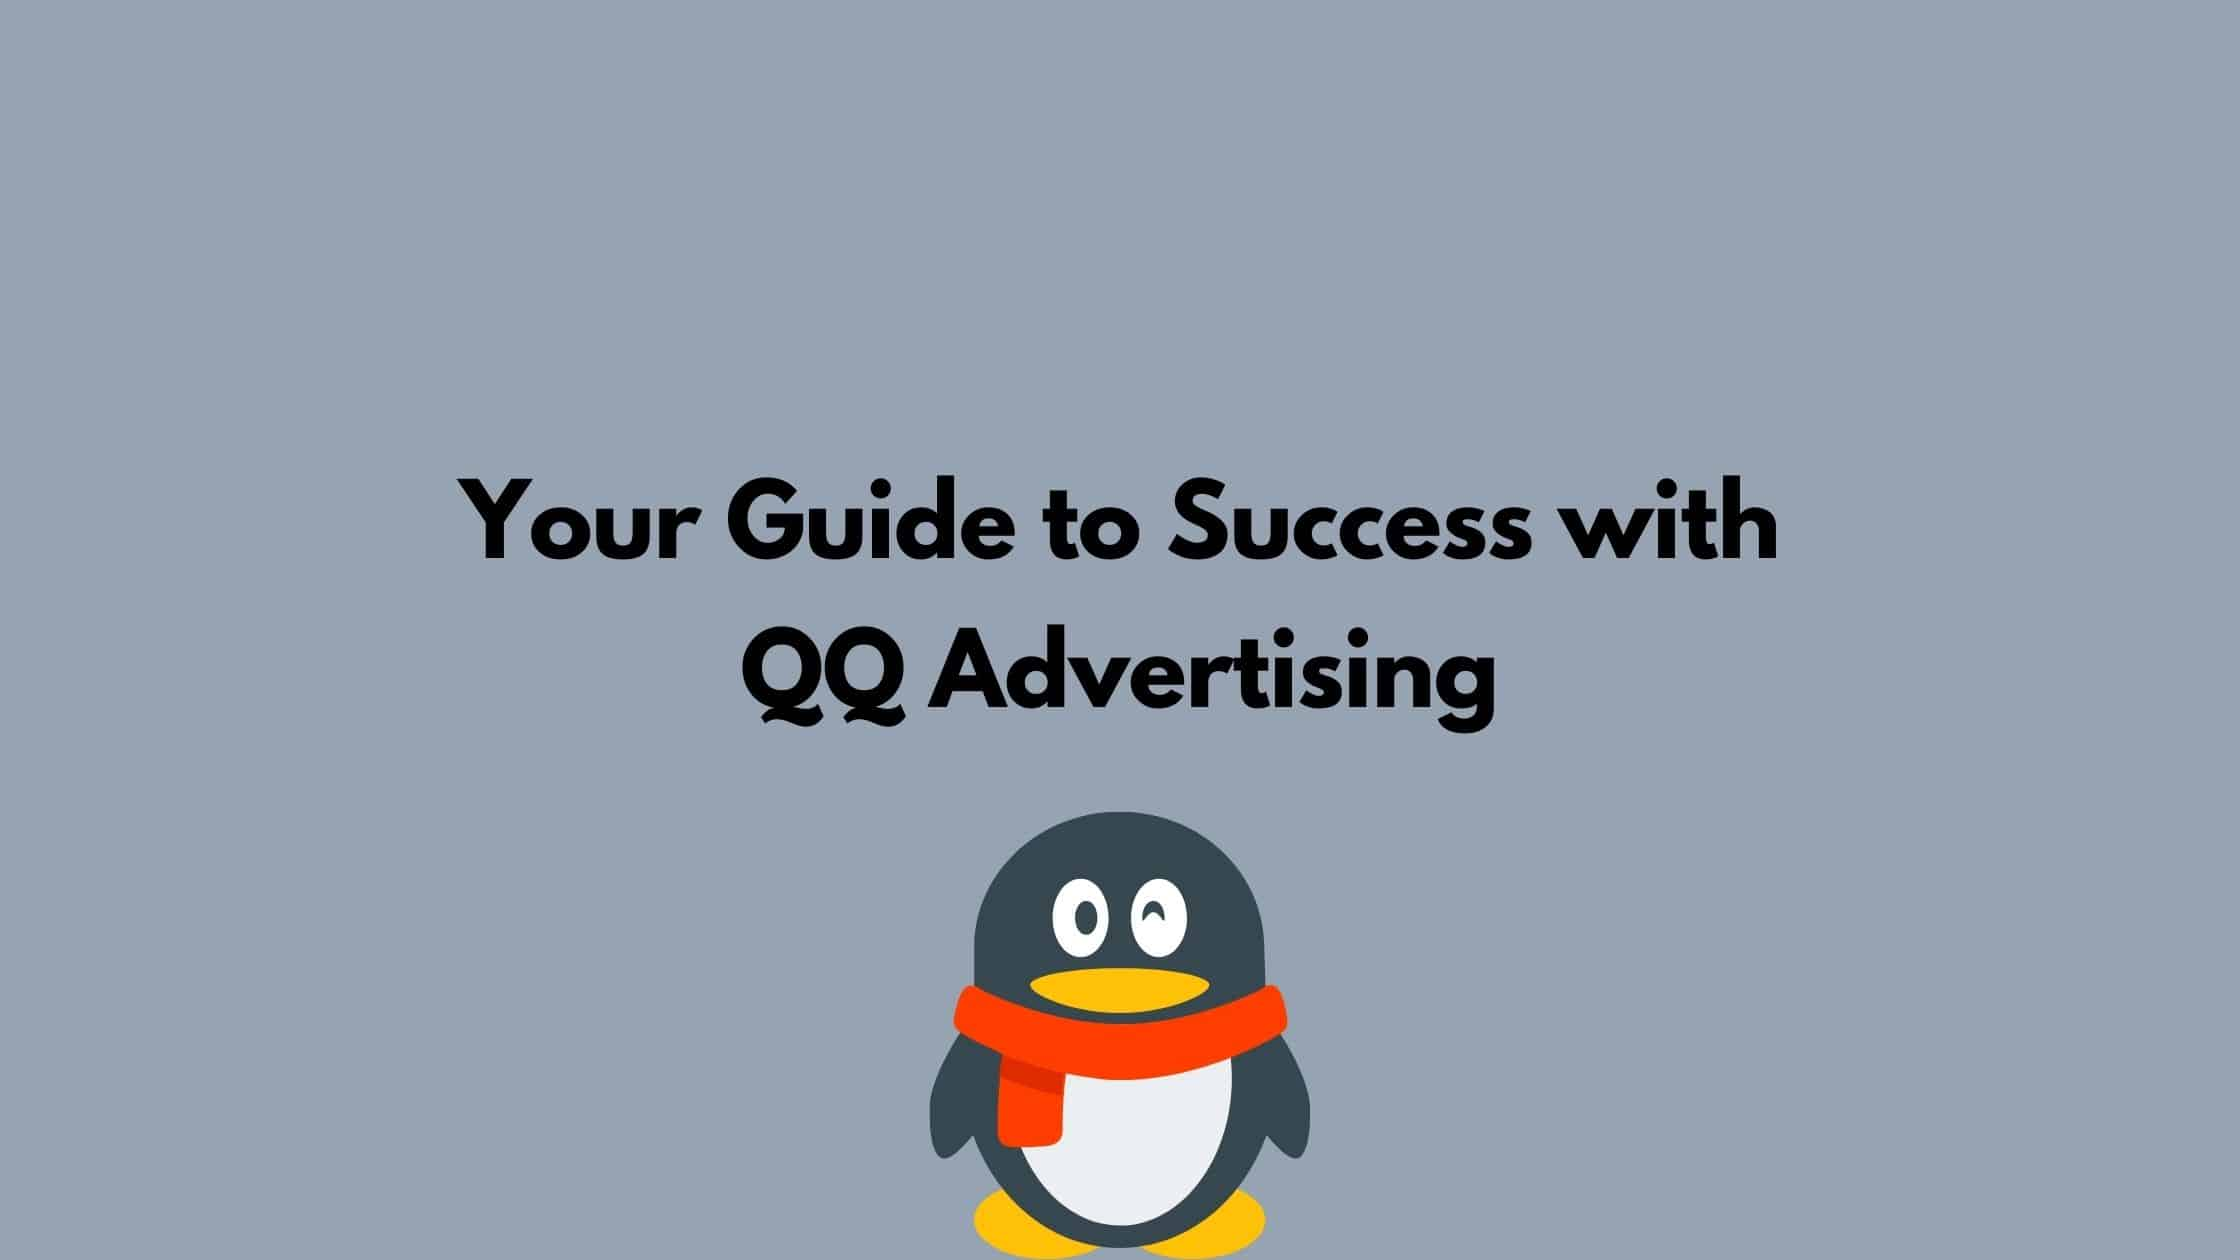 Your Guide to Success with QQ Advertising